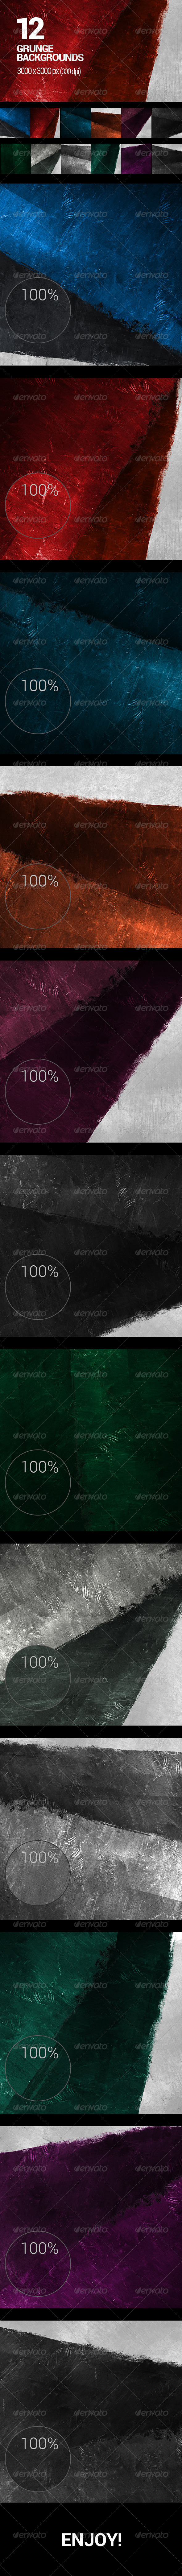 GraphicRiver 12 Painted Urban Grunge Backgrounds Vol.2 7480846